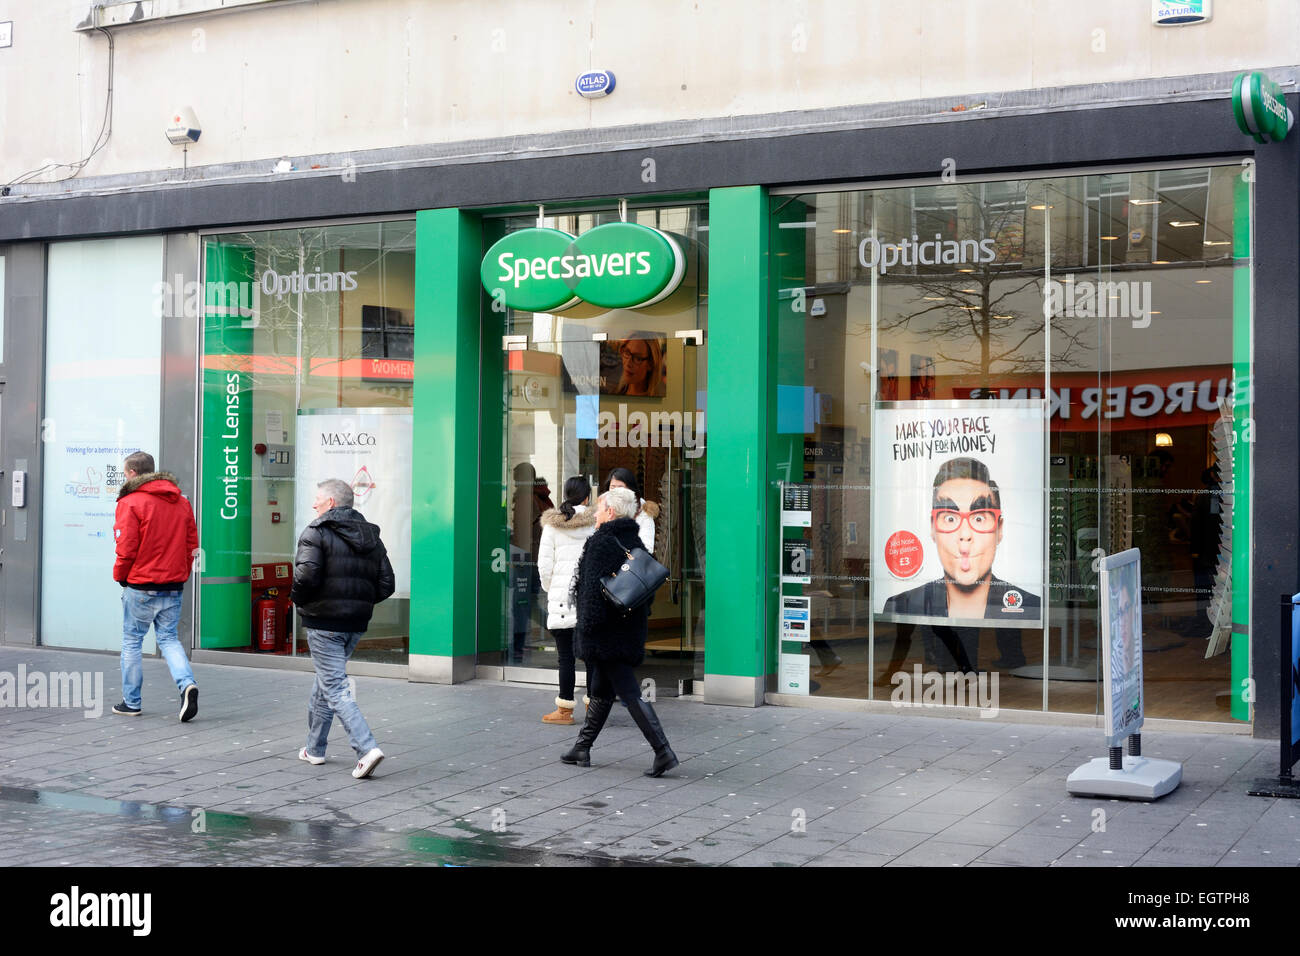 Specsavers store in Liverpool. Stock Photo